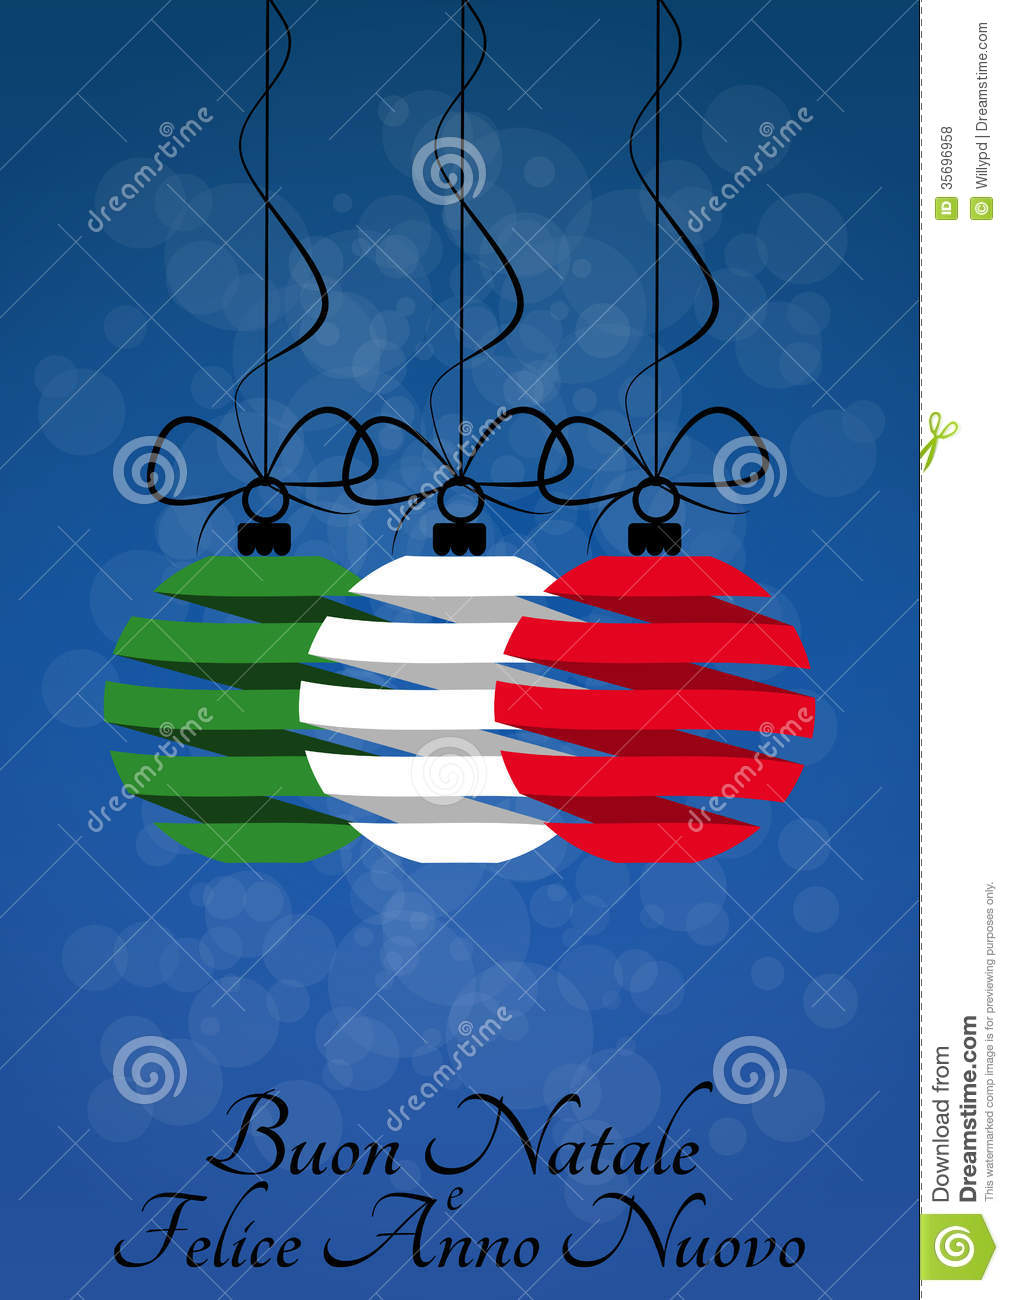 Merry Christmas In Italian.Xmas Italian Stock Illustration Illustration Of Gold 35696958